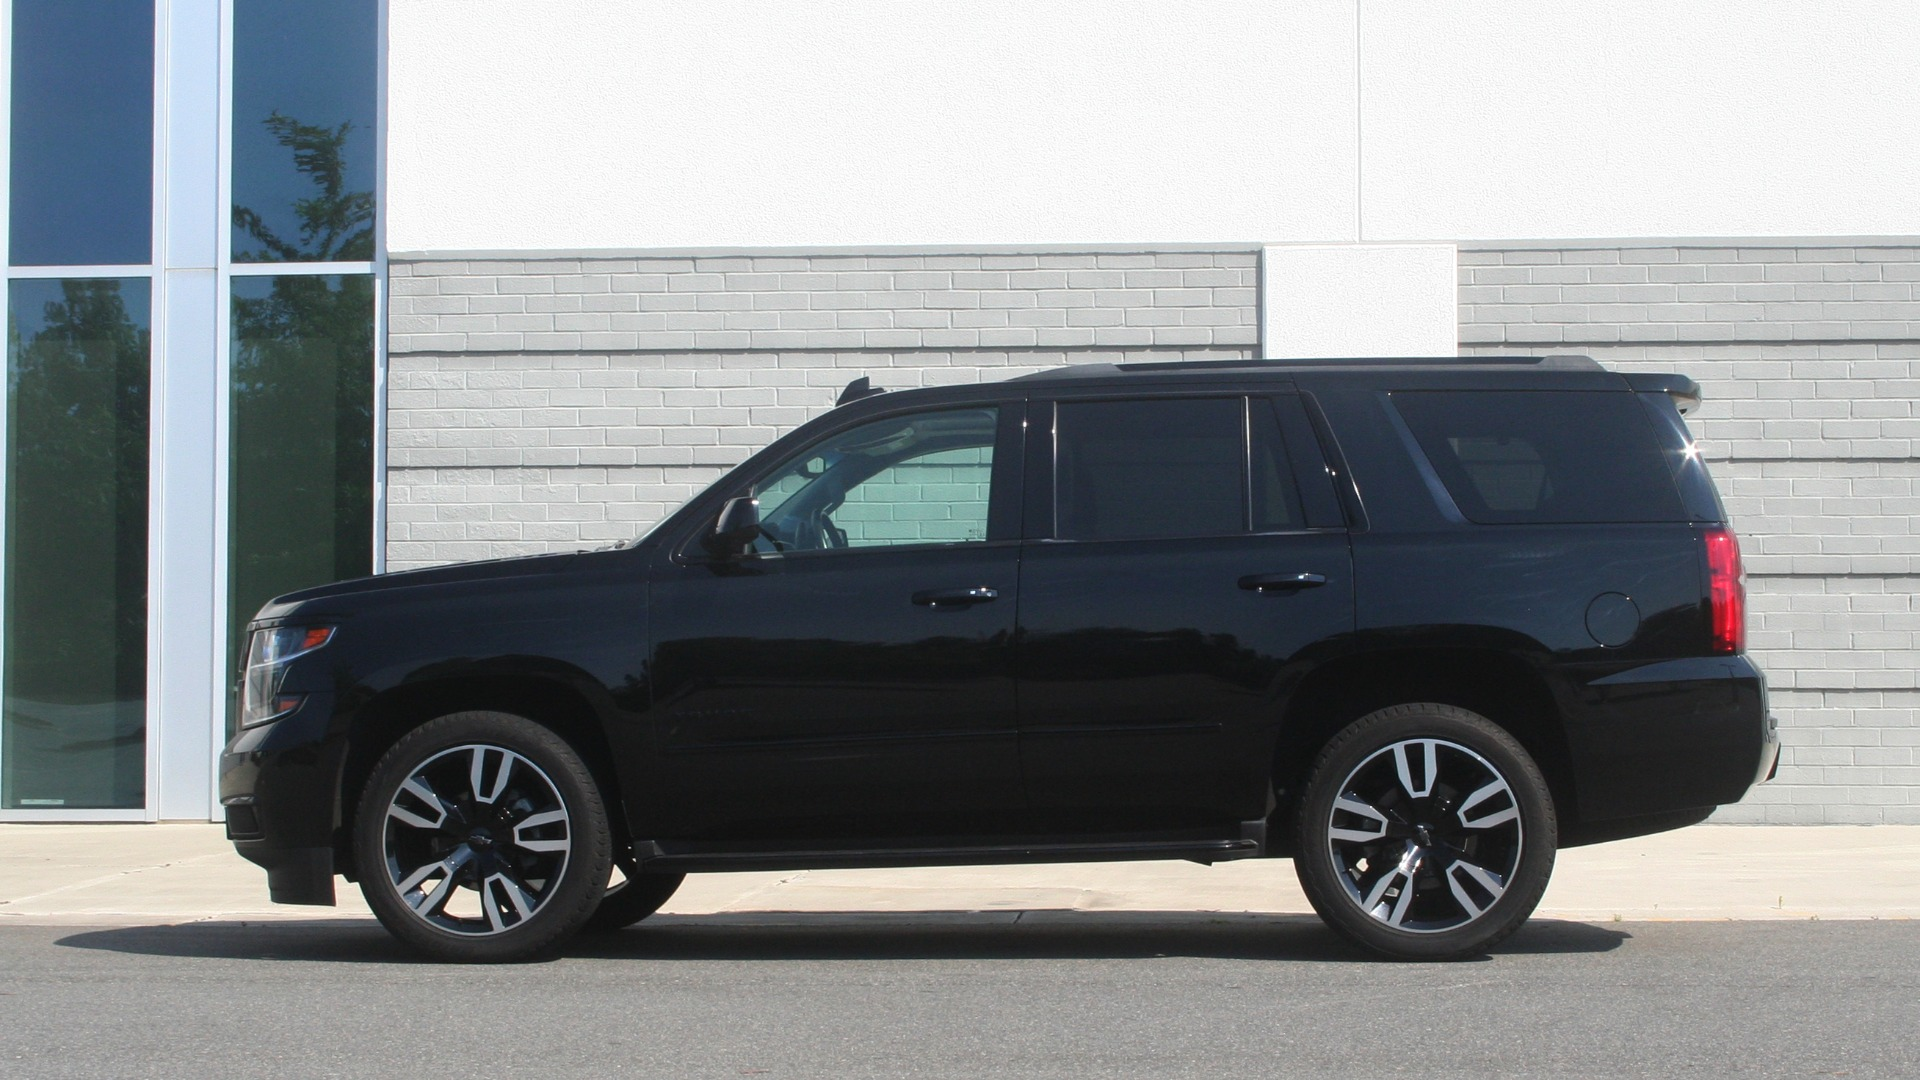 Used 2018 Chevrolet TAHOE PREMIER RST / 4X4 / NAV / BOSE / SUNROOF / 3-ROW / REARVIEW for sale $65,995 at Formula Imports in Charlotte NC 28227 5